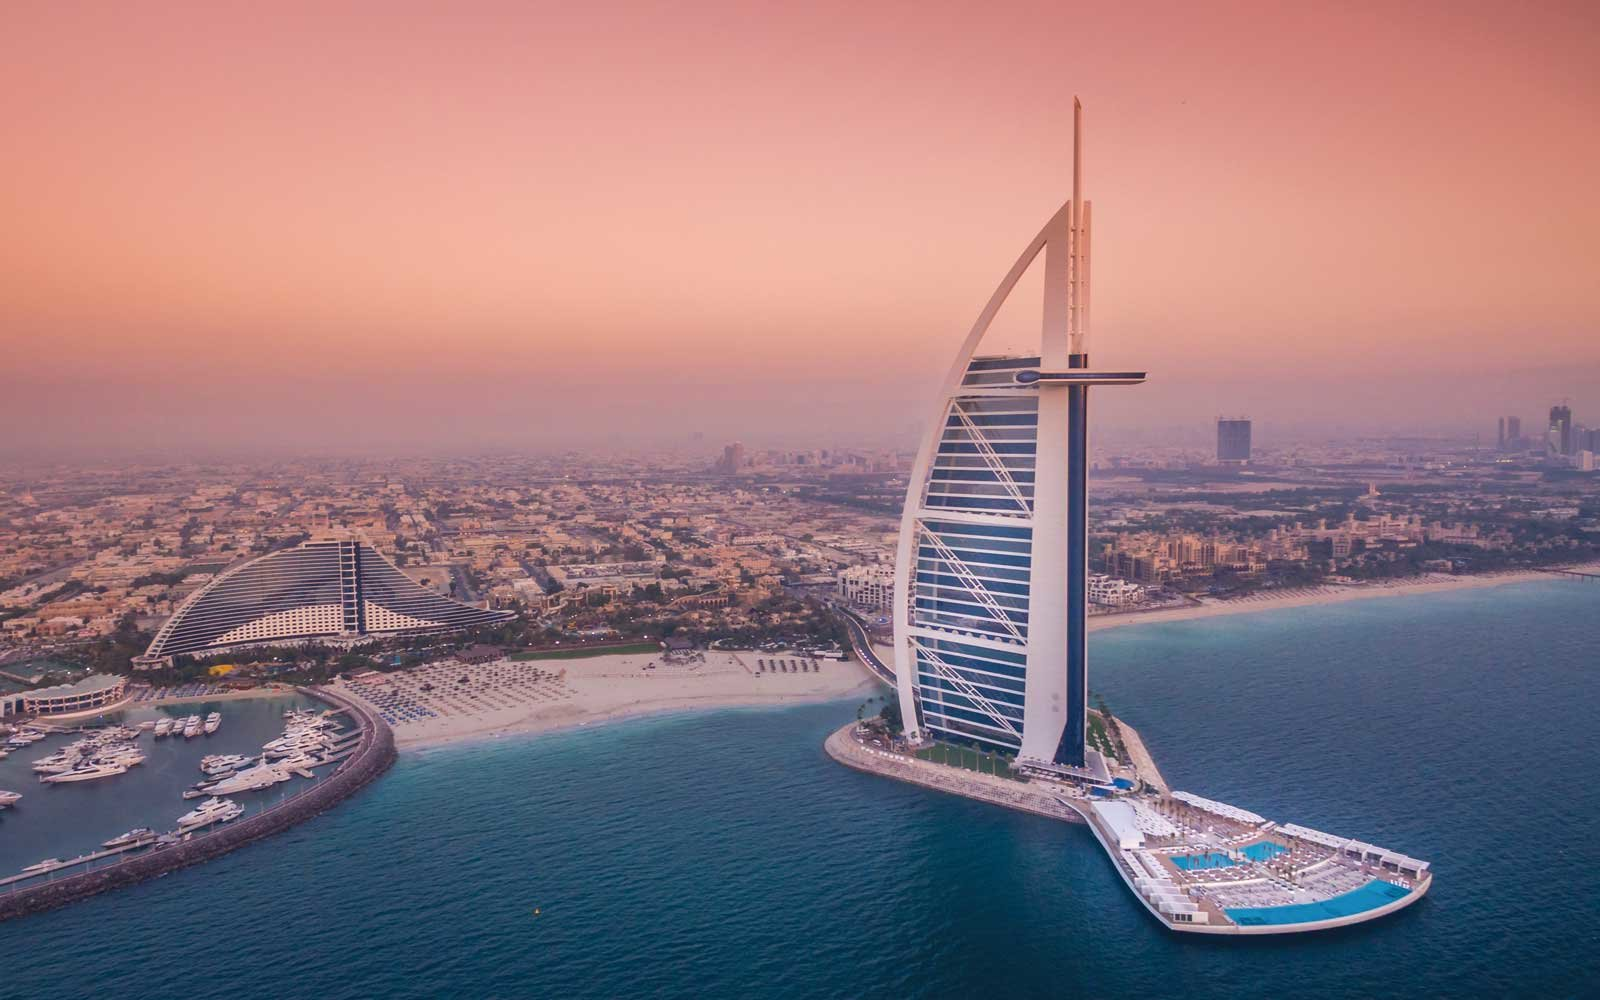 Burj Al Arab Jumeriah Hotel in North Africa and Middle East